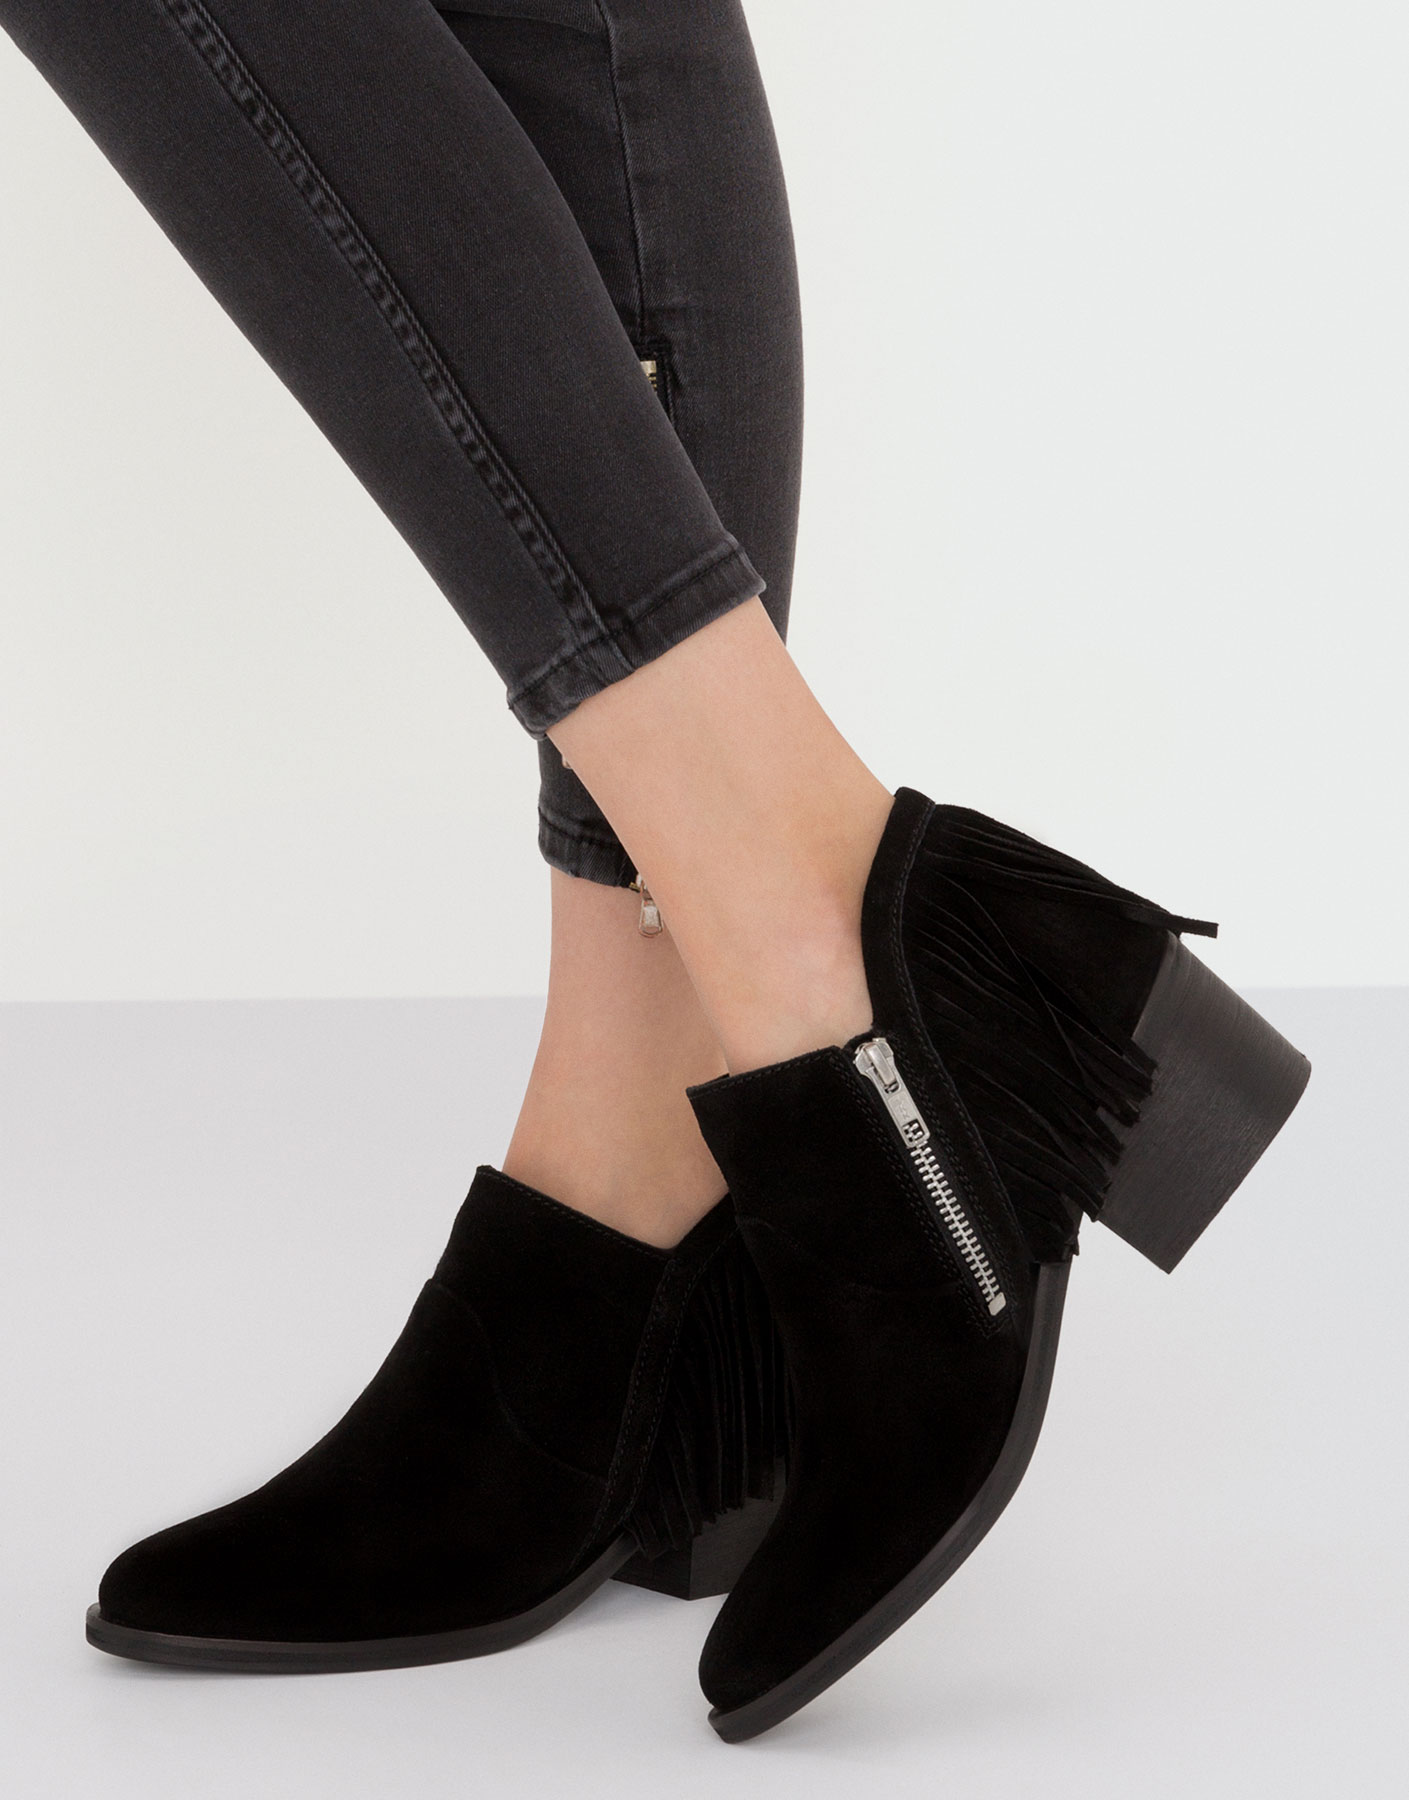 Leather ankle boots with fringe